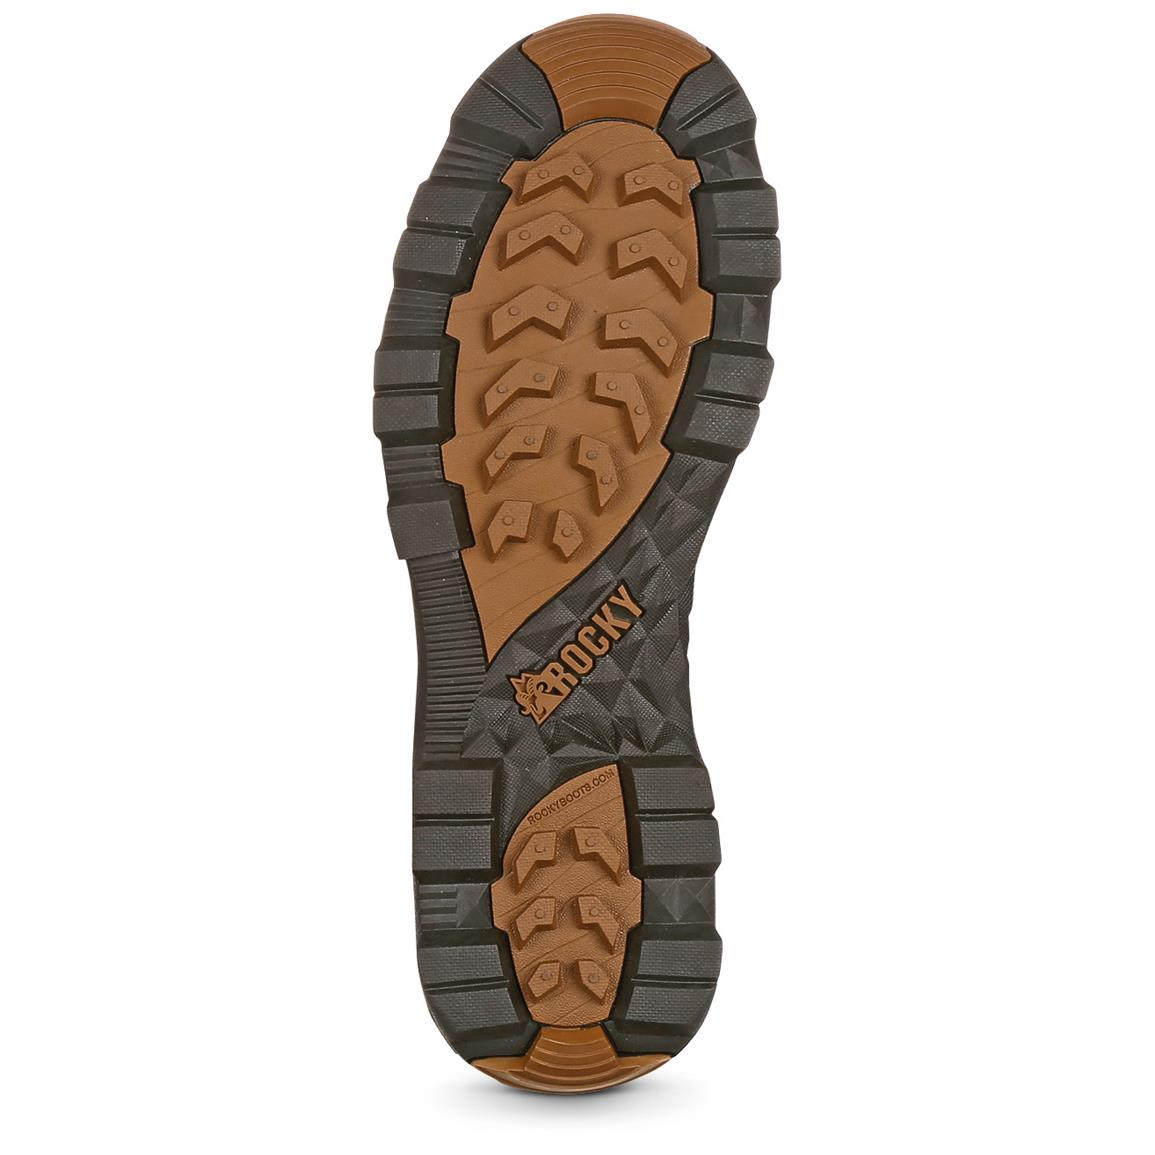 Rubber outsole for all-over traction